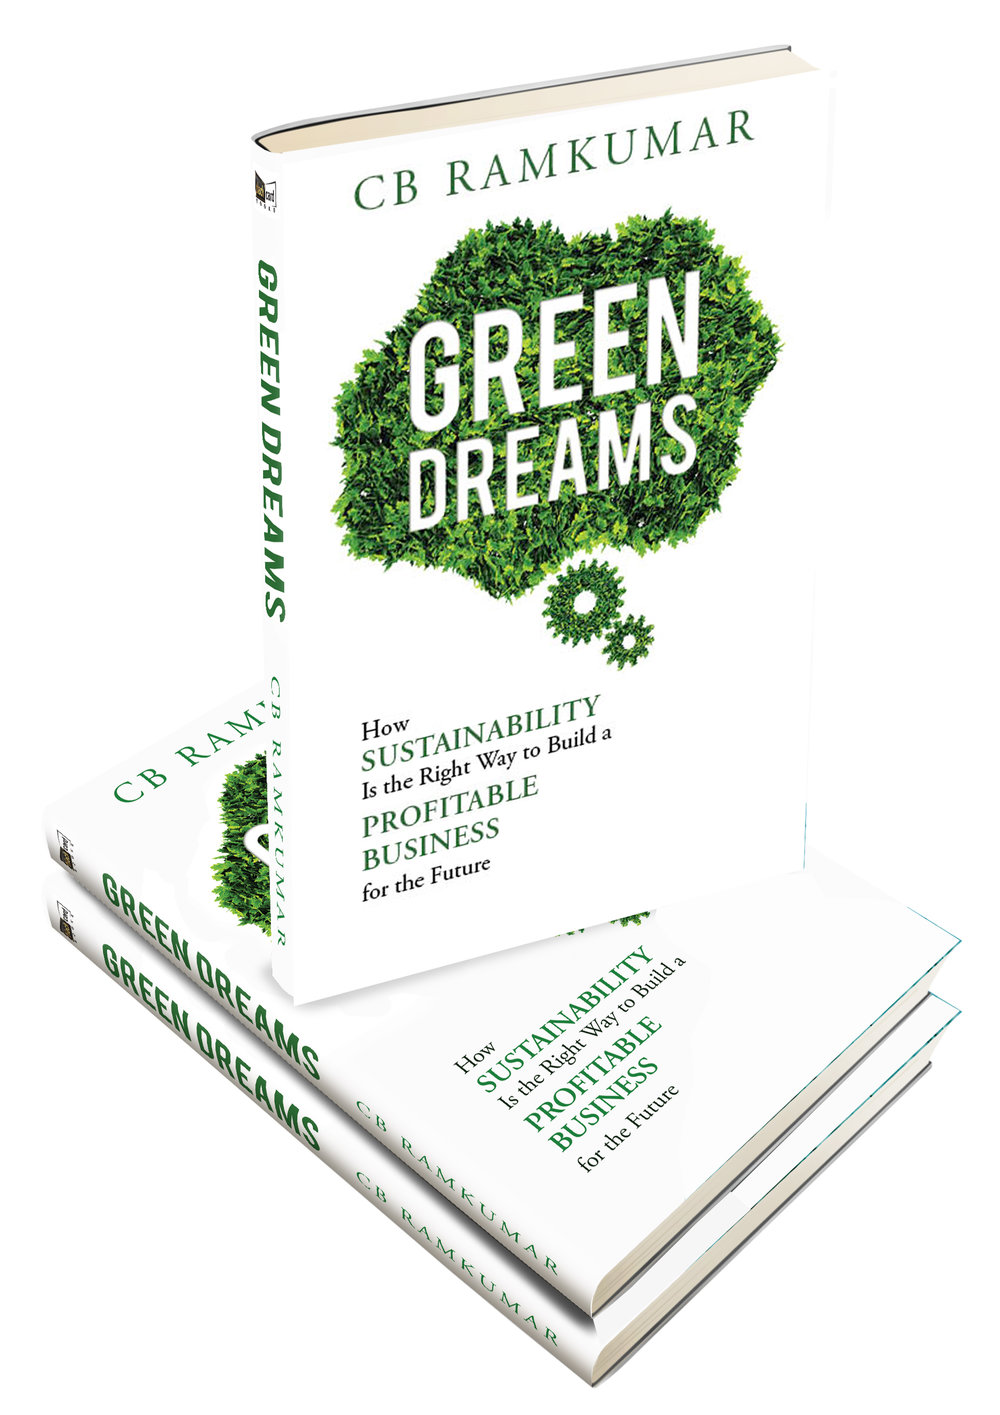 Green Dreams Book 3D_stack.jpg